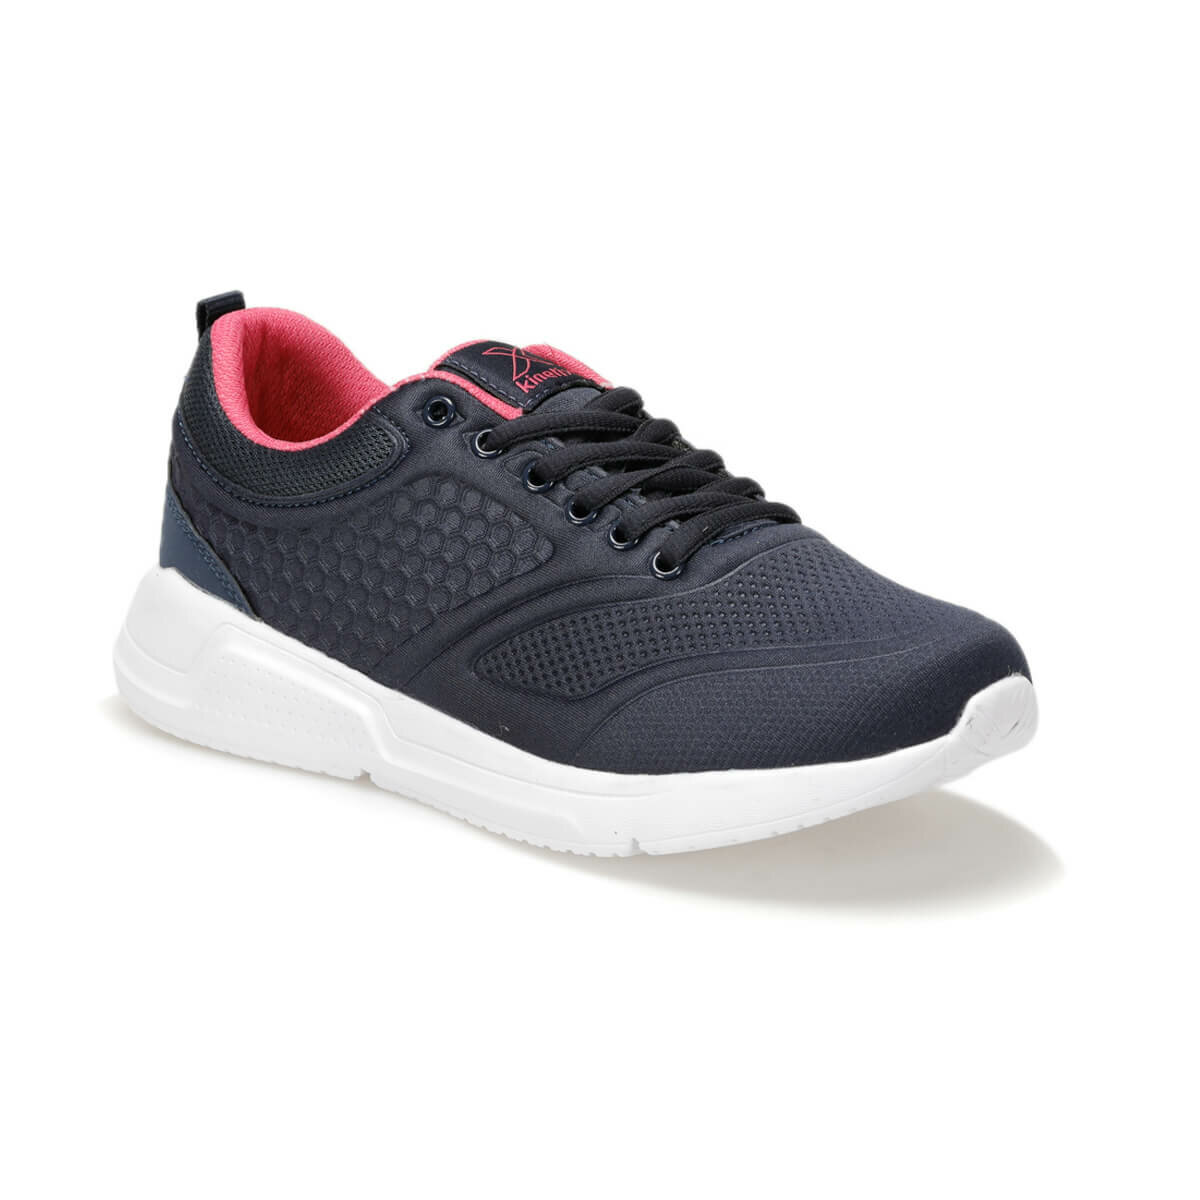 FLO FREDA W Navy Blue Women 'S Sneaker Shoes KINETIX